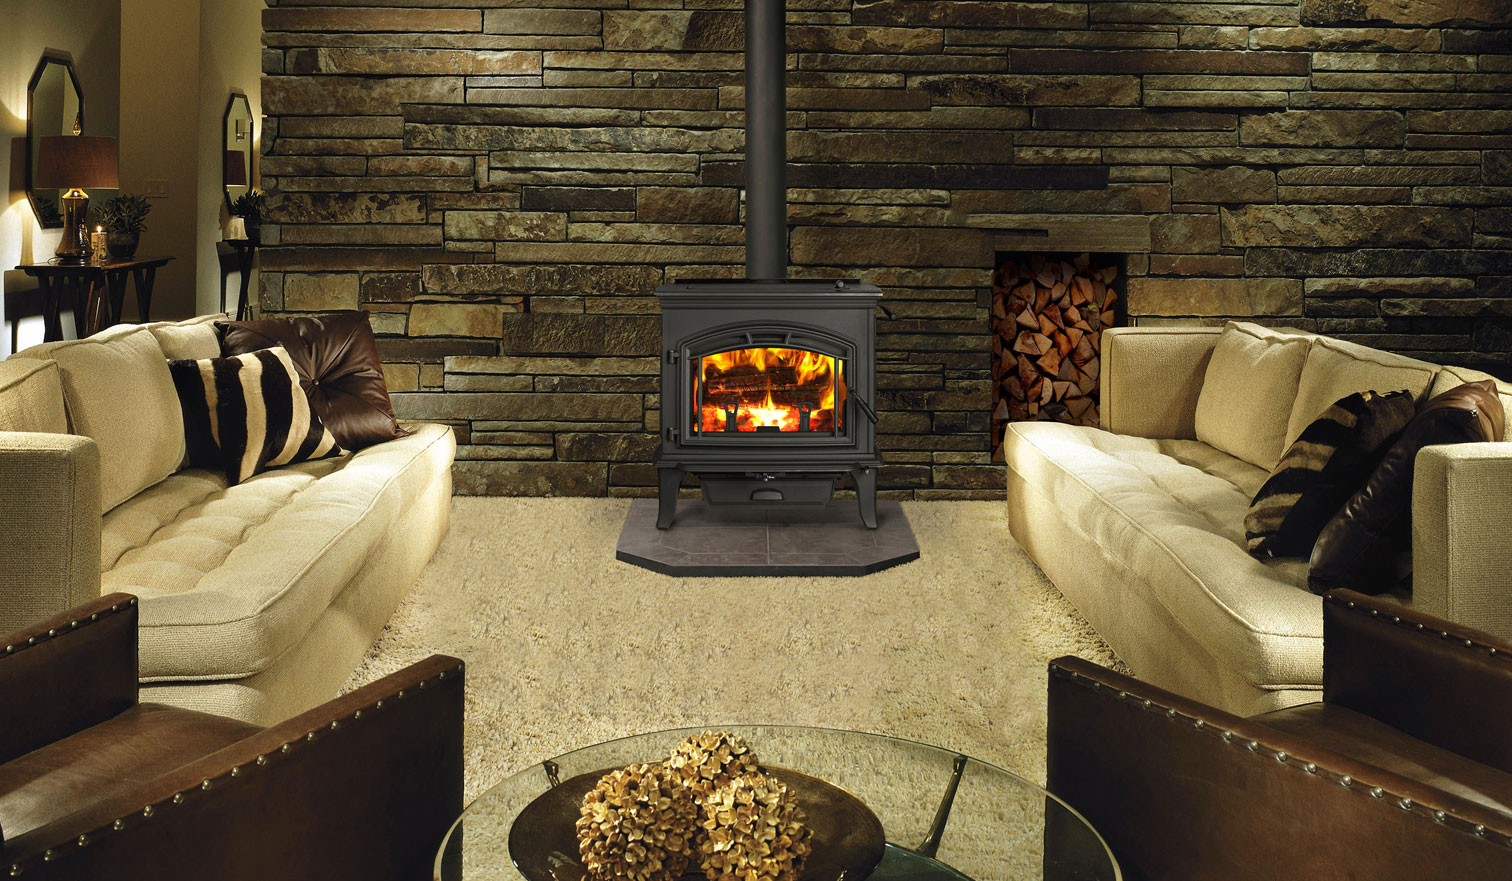 week winter pool only hearthstone sale fireplace heritage me hearth sales bennington mid near